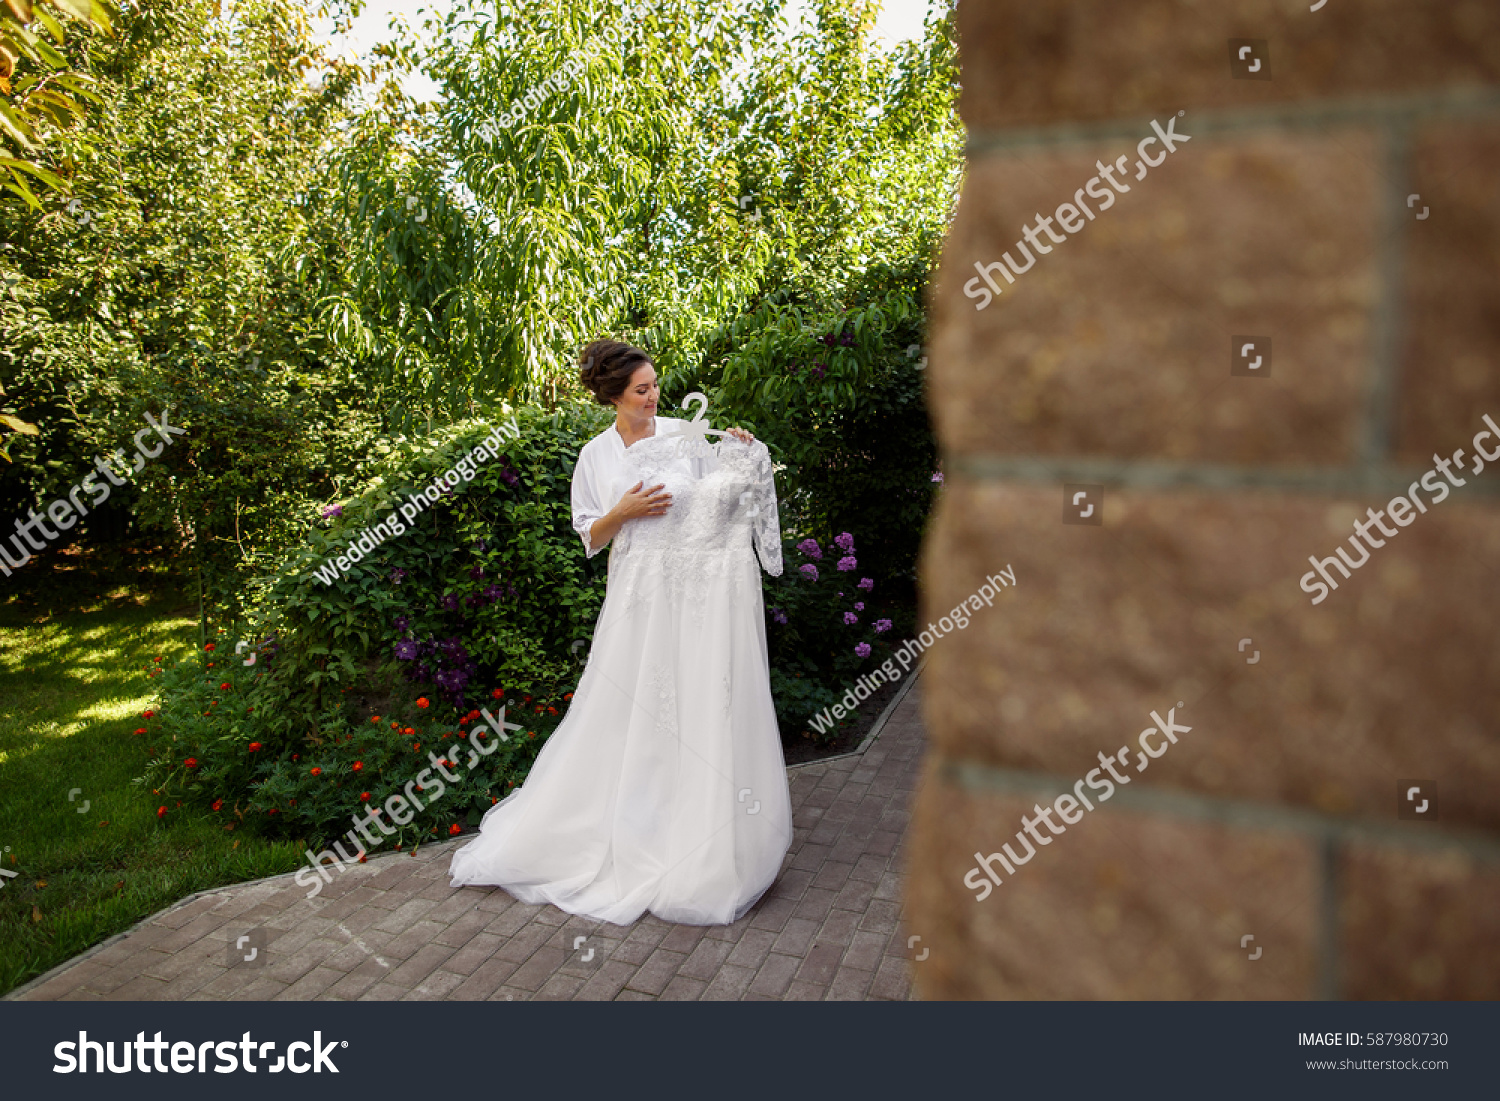 Bride Holding White Wedding Dress In Garden Morning Russian Translation Of The Inscription: Morning Garden Wedding Dresses At Websimilar.org